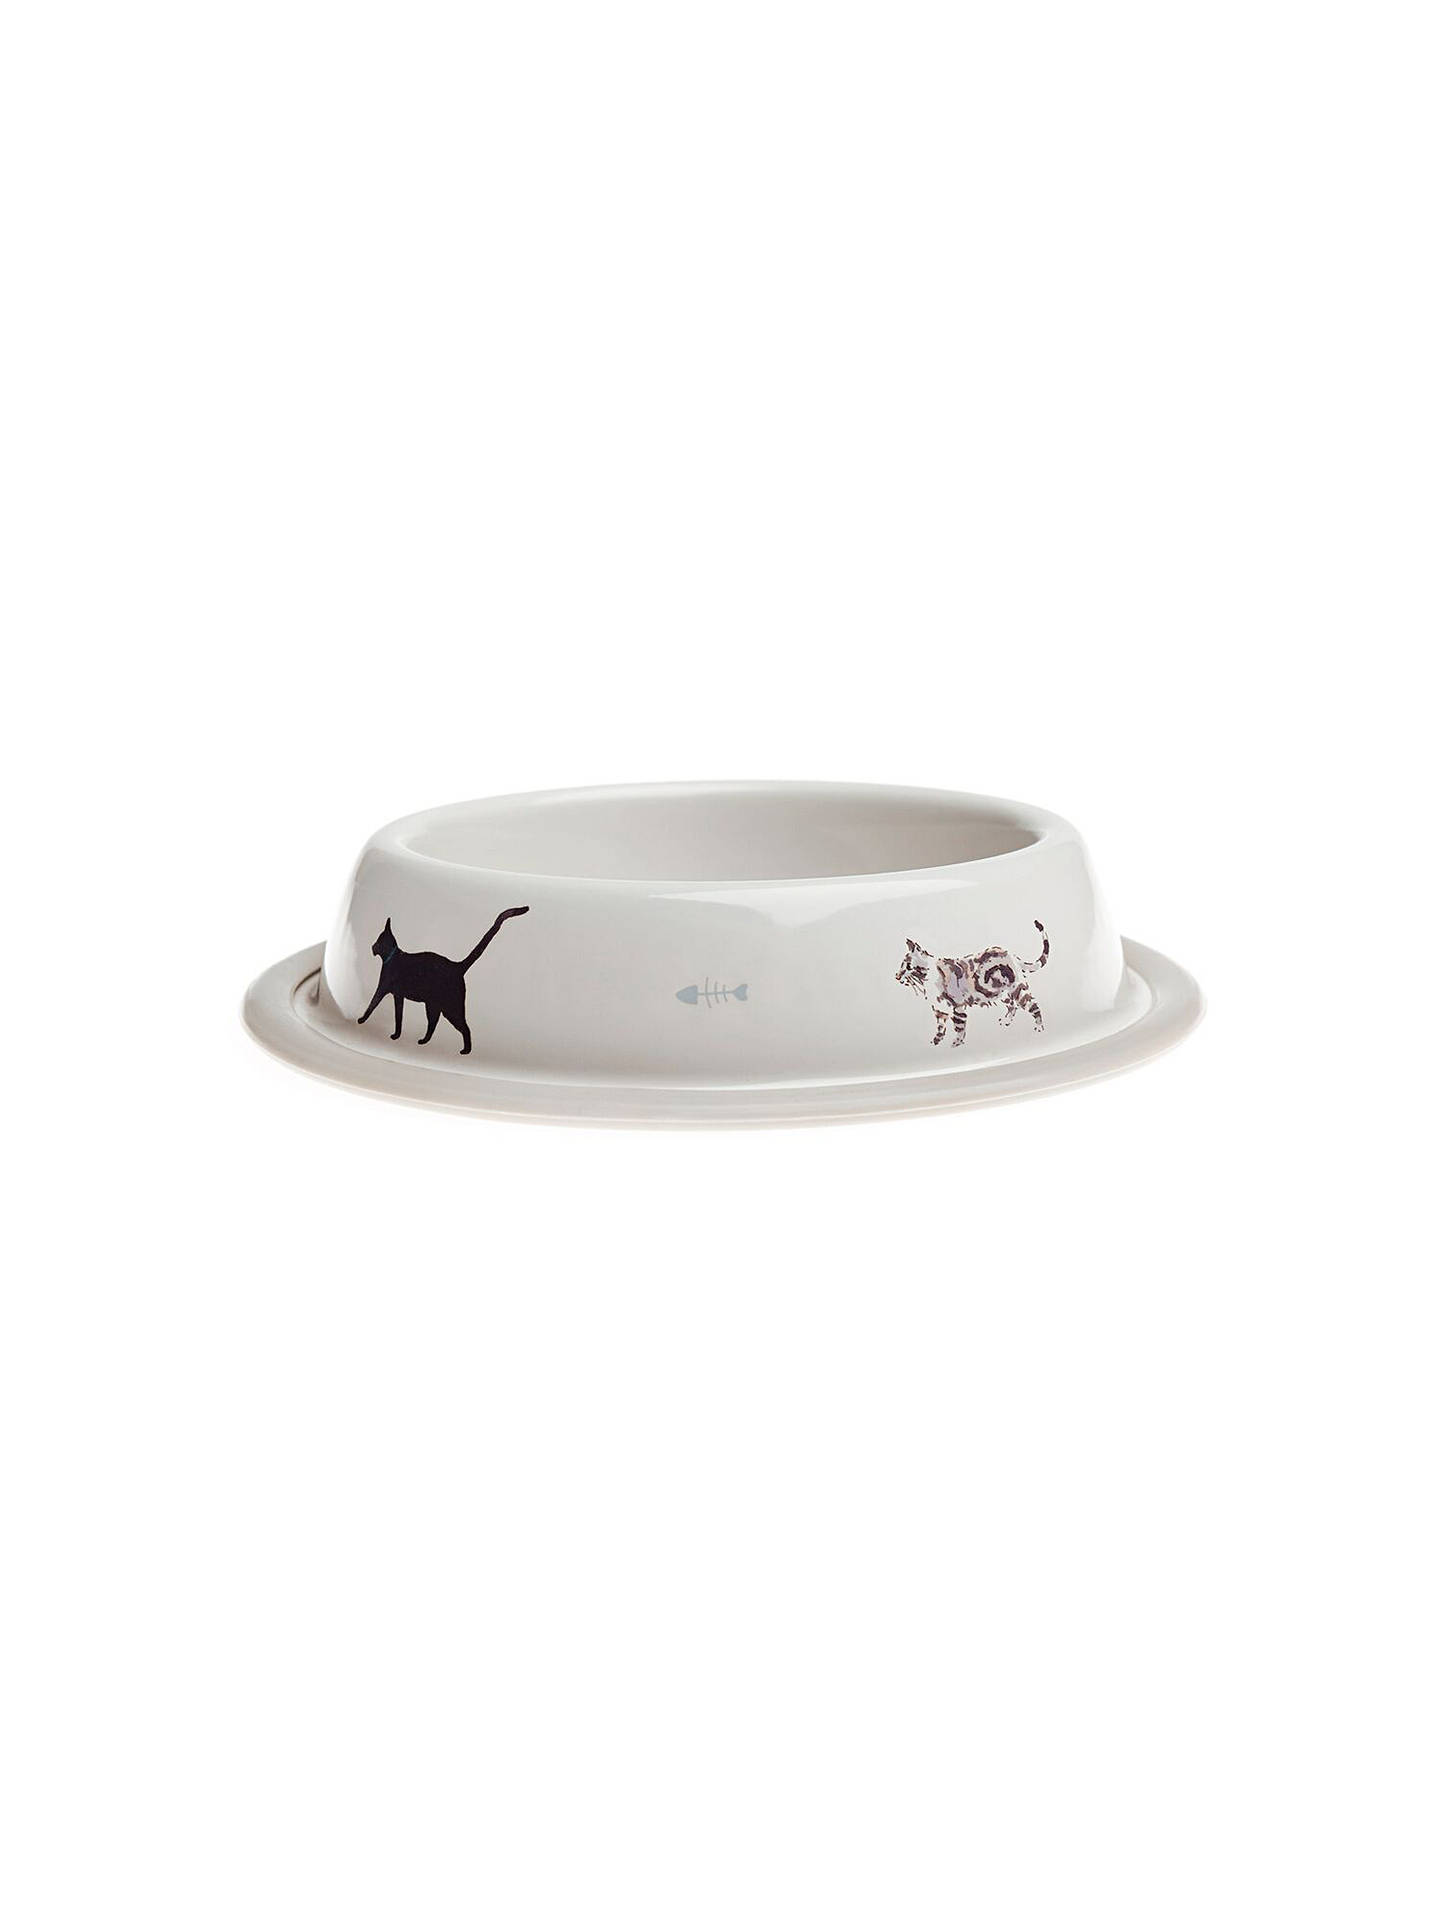 BuySophie Allport Purrfect Cat Bowl Online at johnlewis.com